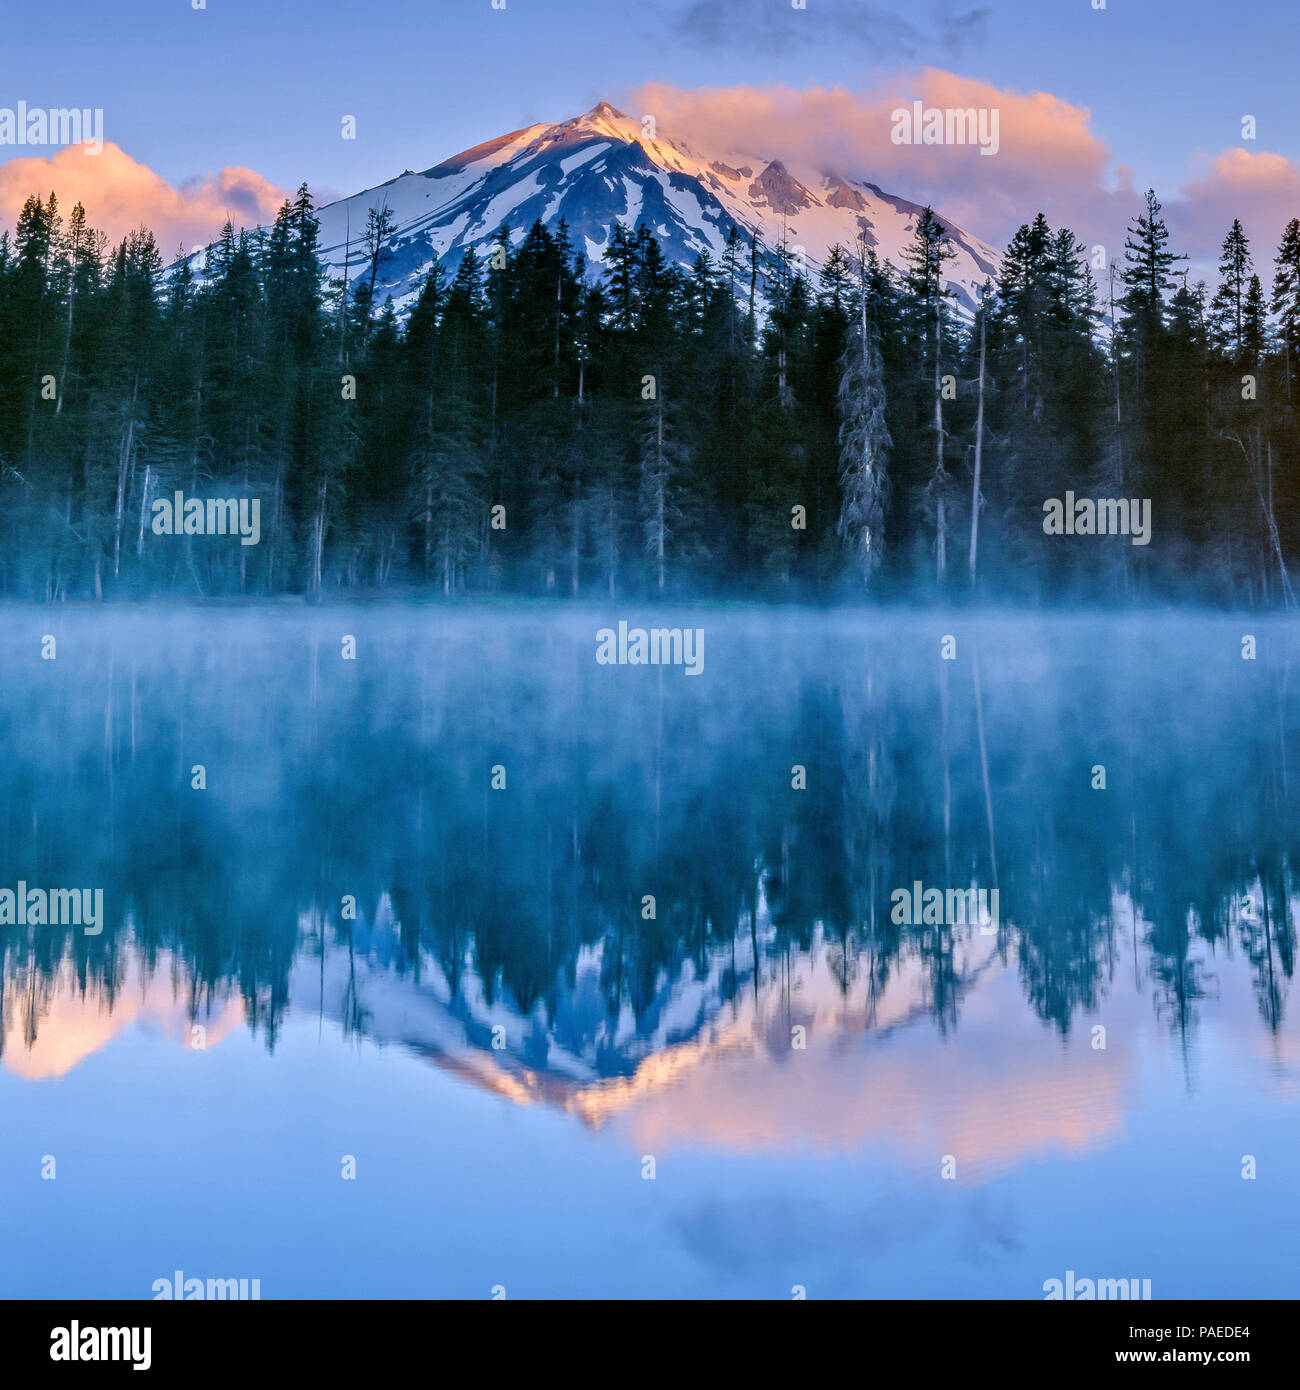 Dawn, Summit Lake, Lassen Volcanic National Park, California - Stock Image